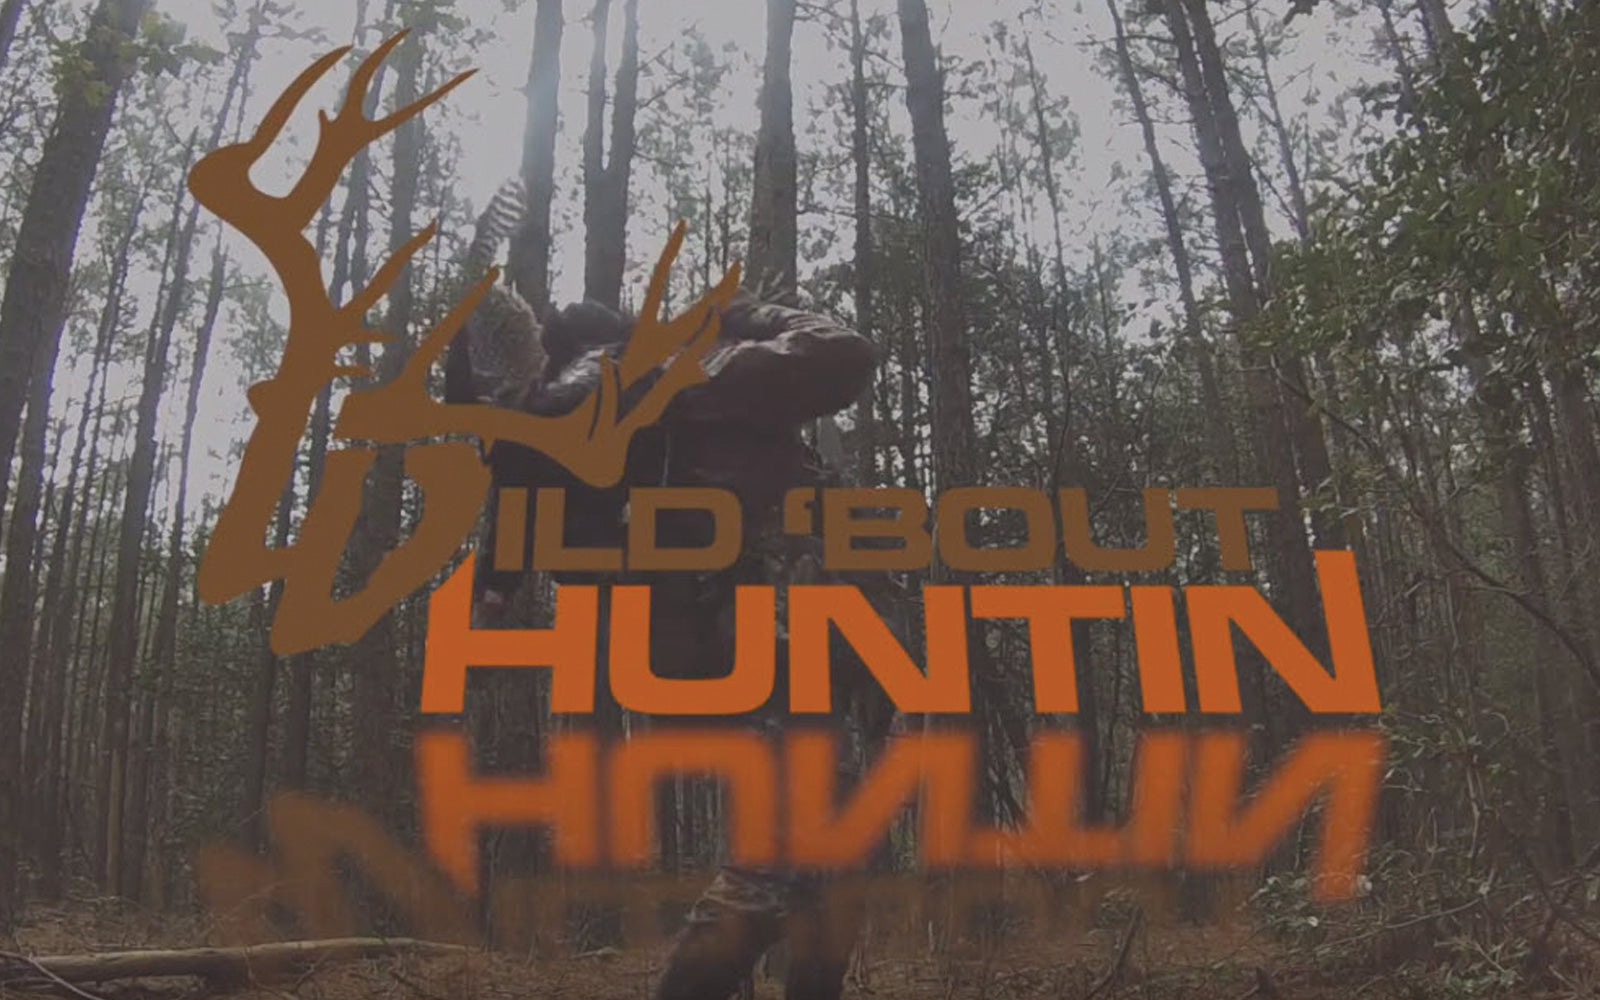 Wild Bout Huntin' RaptoRazor Review